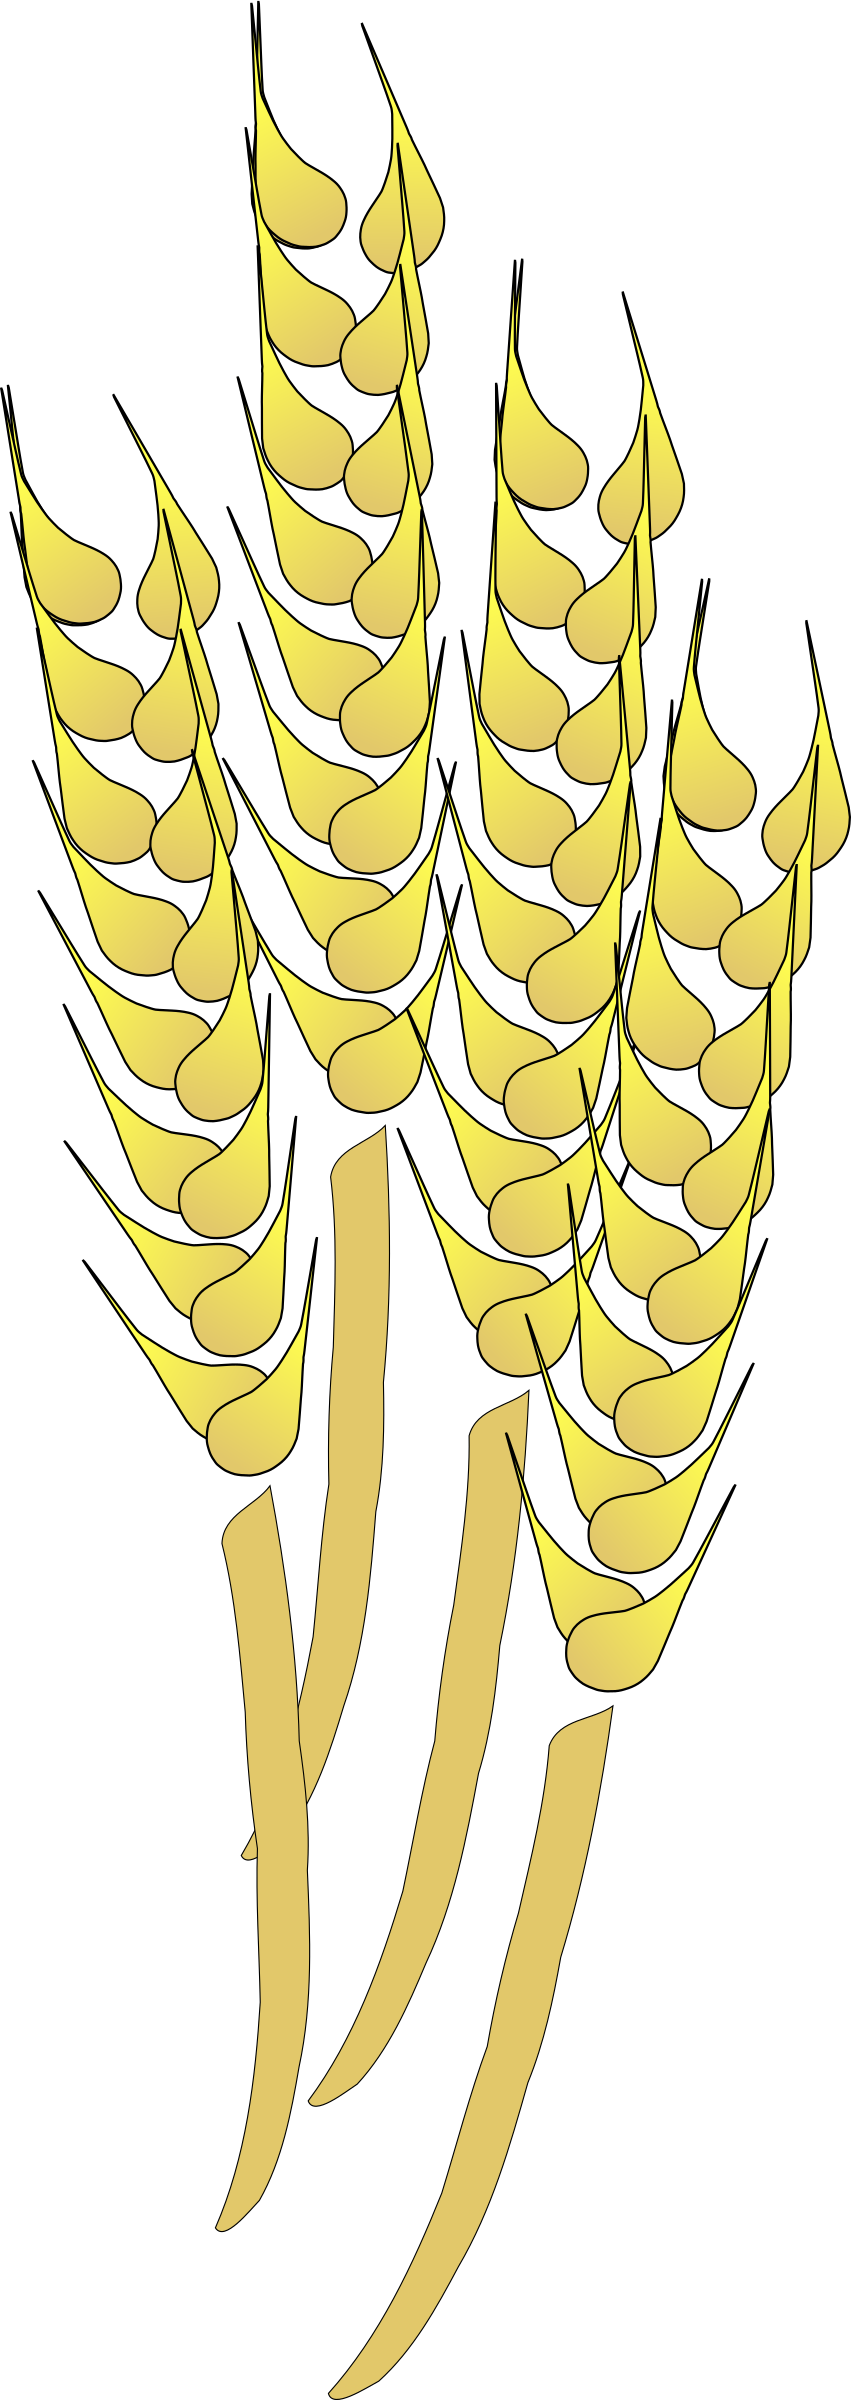 Wheat clipart wheat plant. Big image png